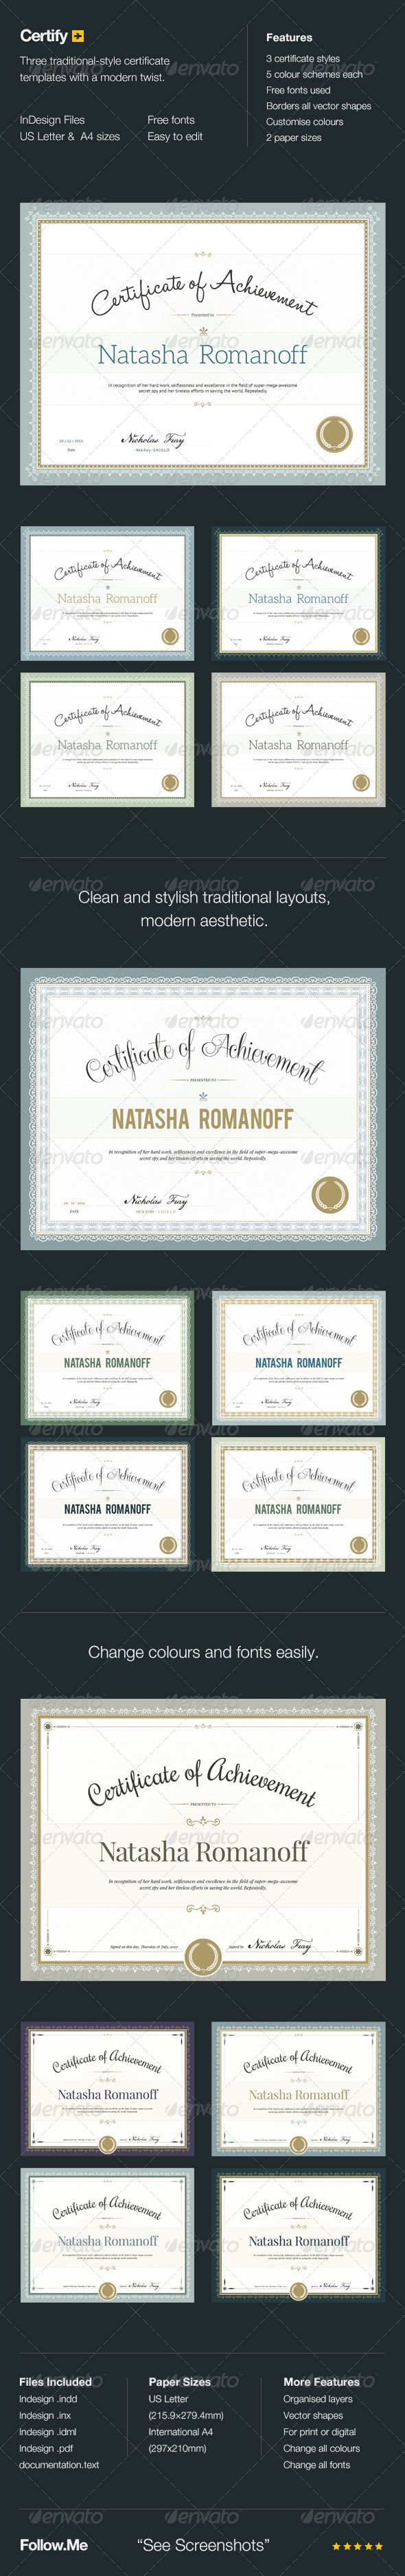 Certify - Award Certificates | Certificate, Certificate design and ...